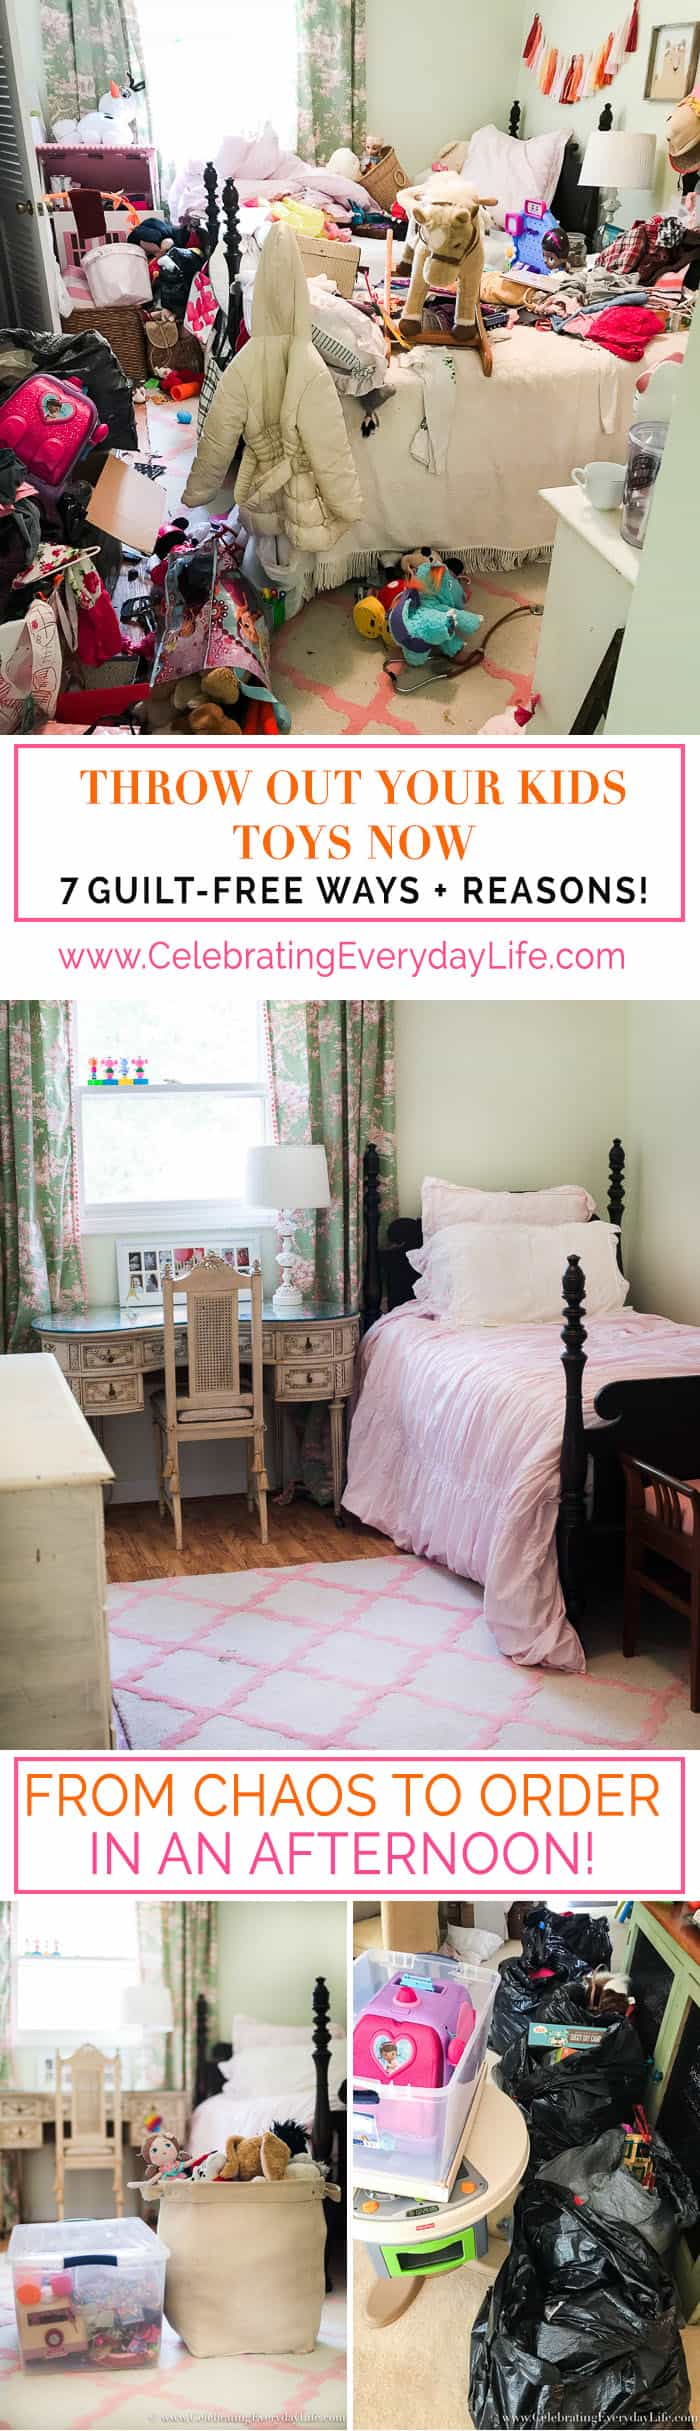 7 Guilt-Free Ways and Reasons to Throw Out Your Kids Toys Now, Celebrating Everyday Life with Jennifer Carroll